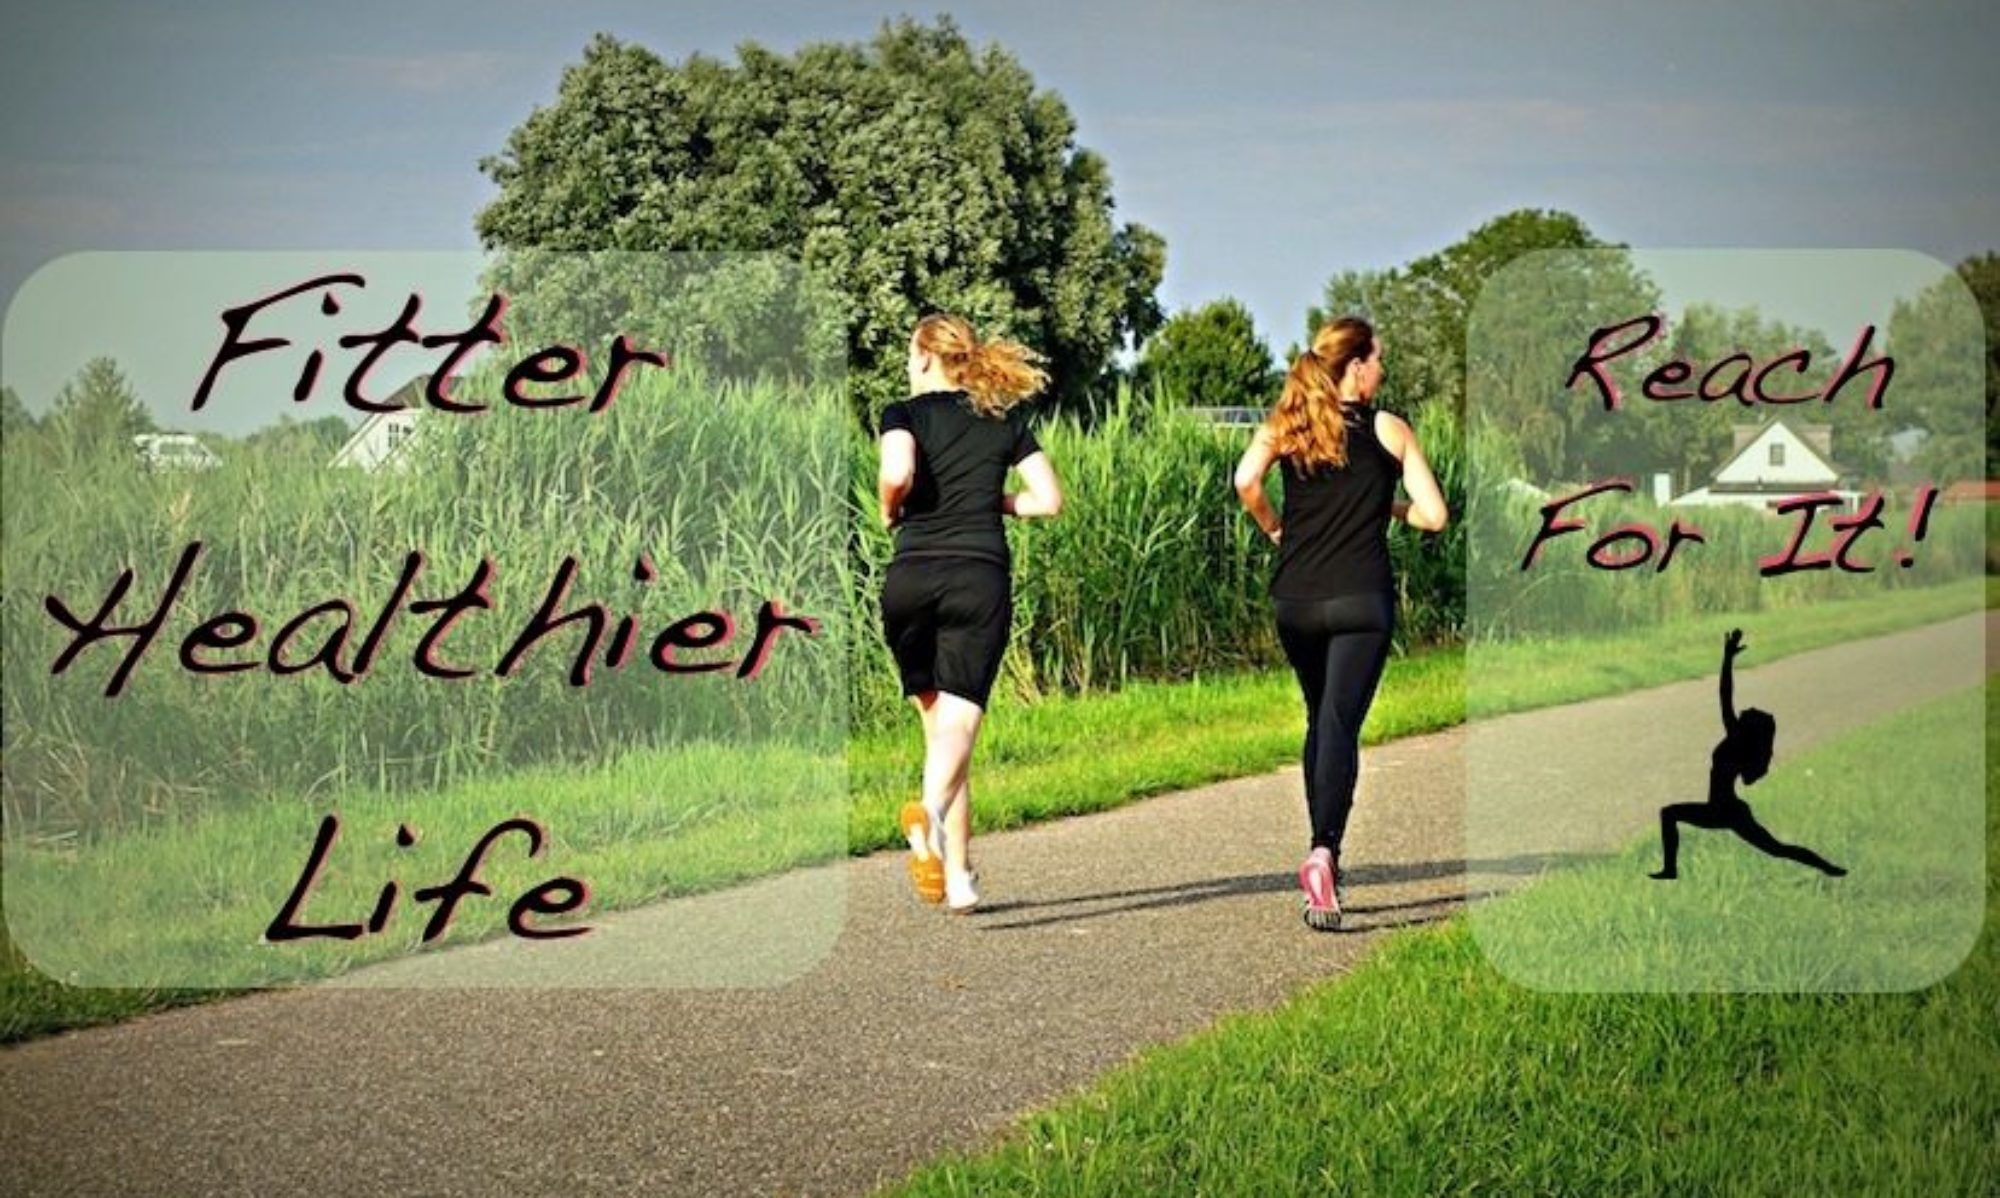 Fitter Healthier Life